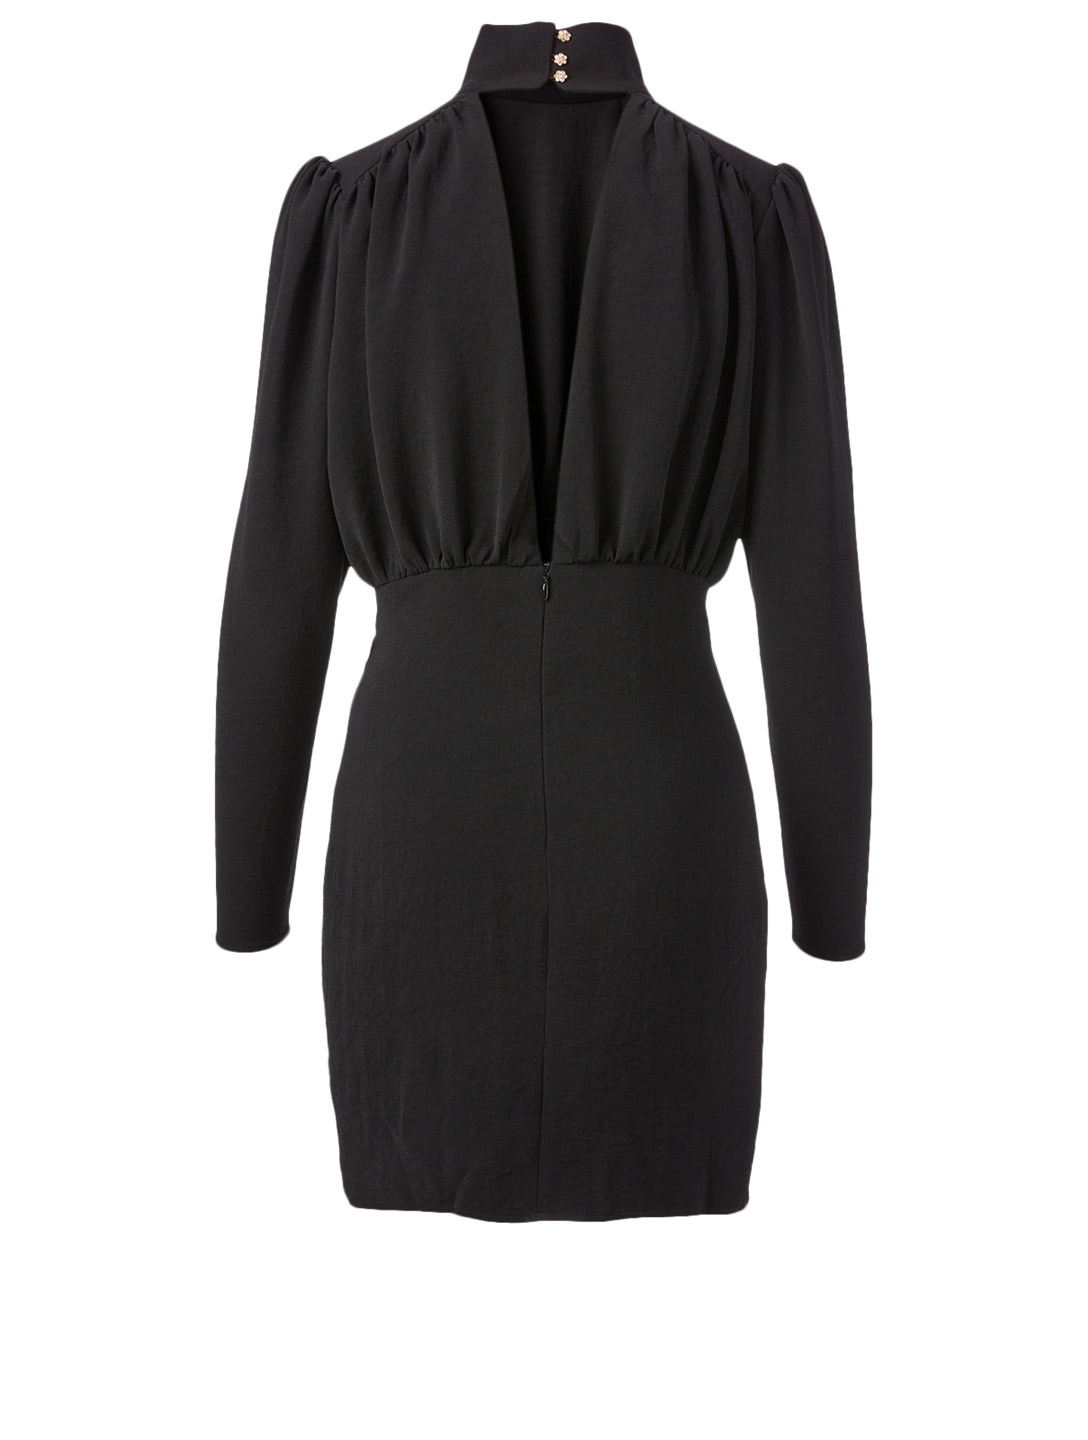 BA&SH Kina Long-Sleeve Mini Dress Women's Black